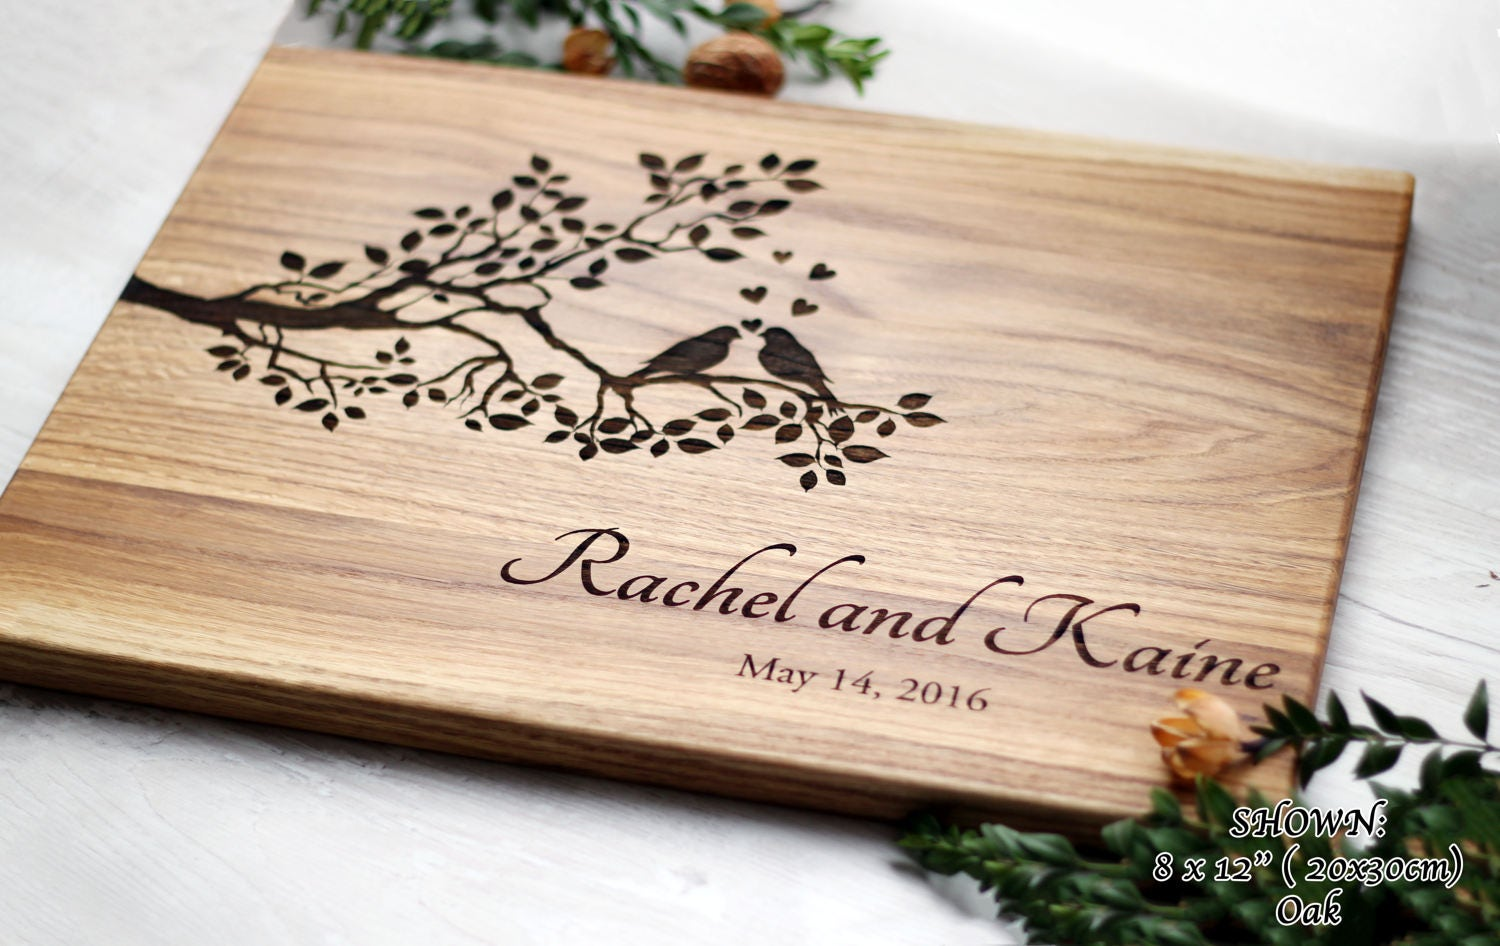 Personalized Wedding Gifts For Couples: Unique Wedding Gifts For Couple Personalized Cutting Board